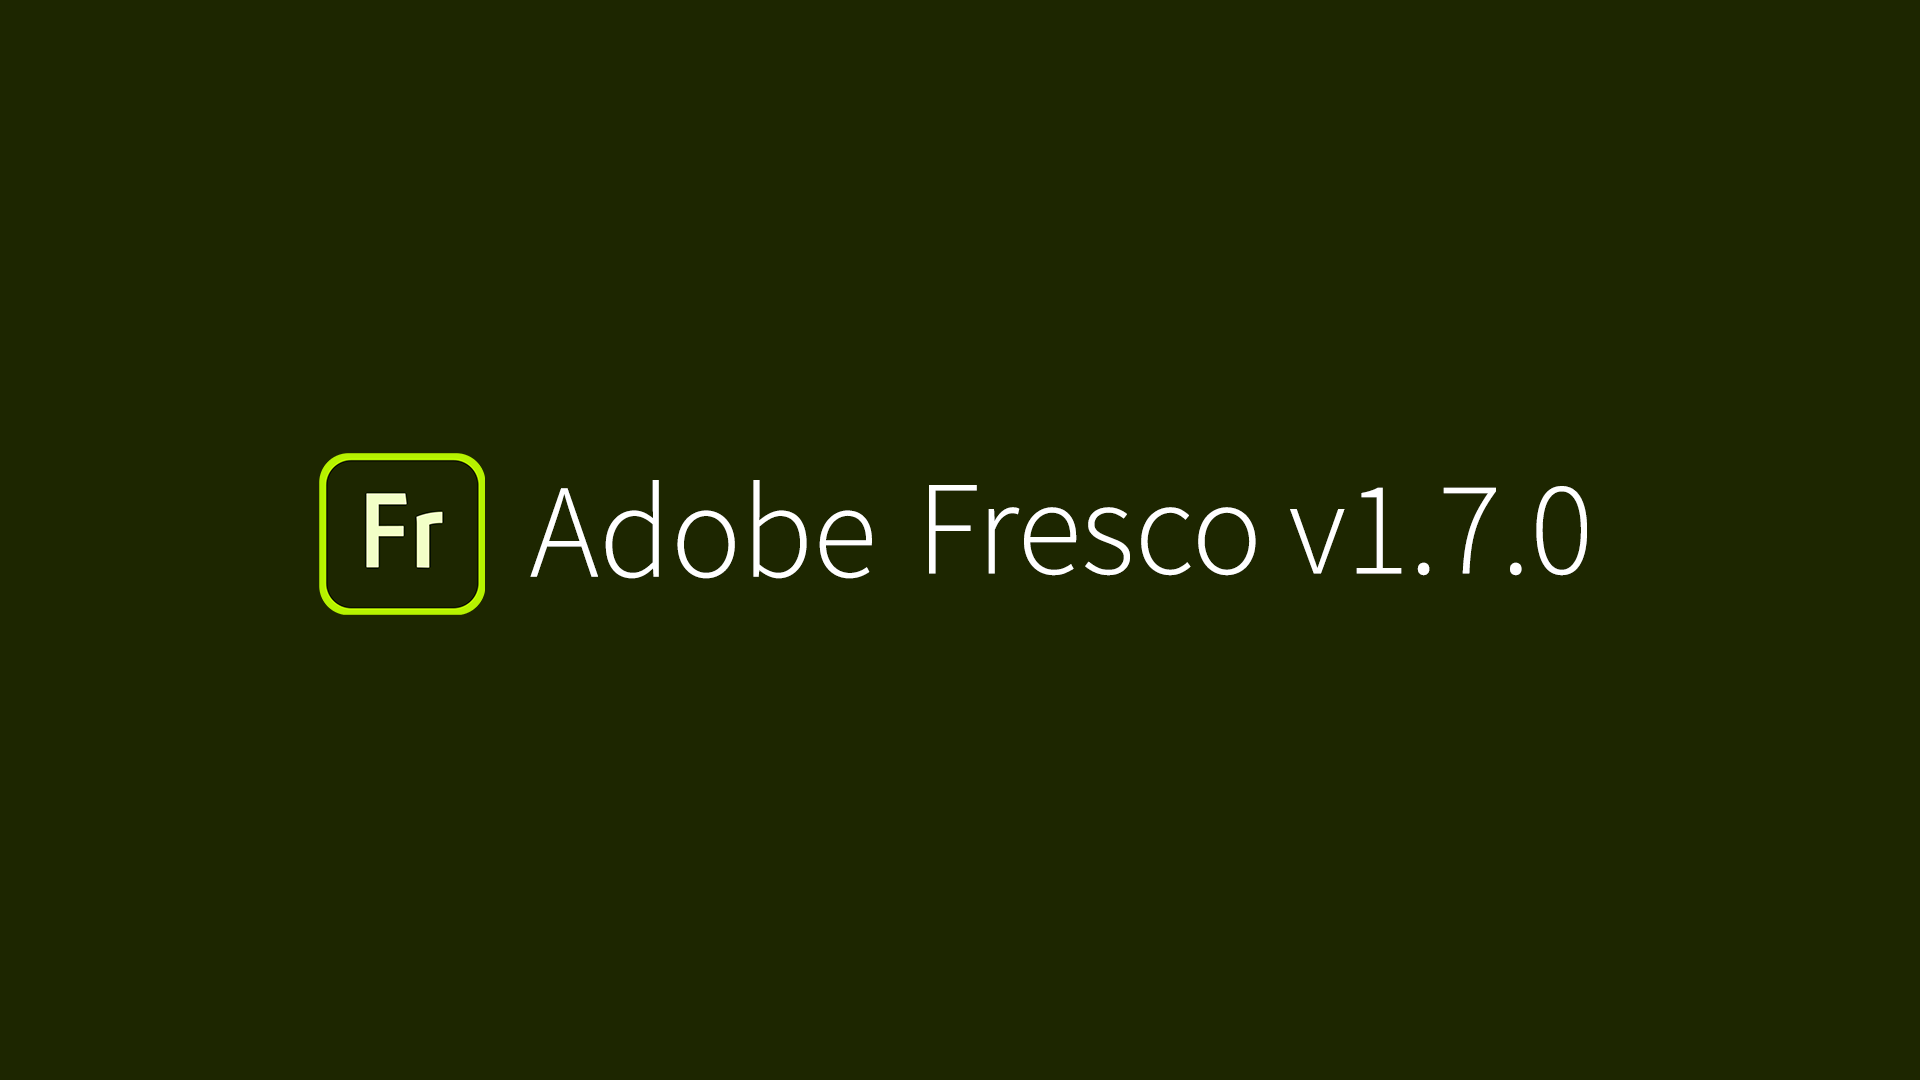 Adobe Fresco Free Download v1.7.0